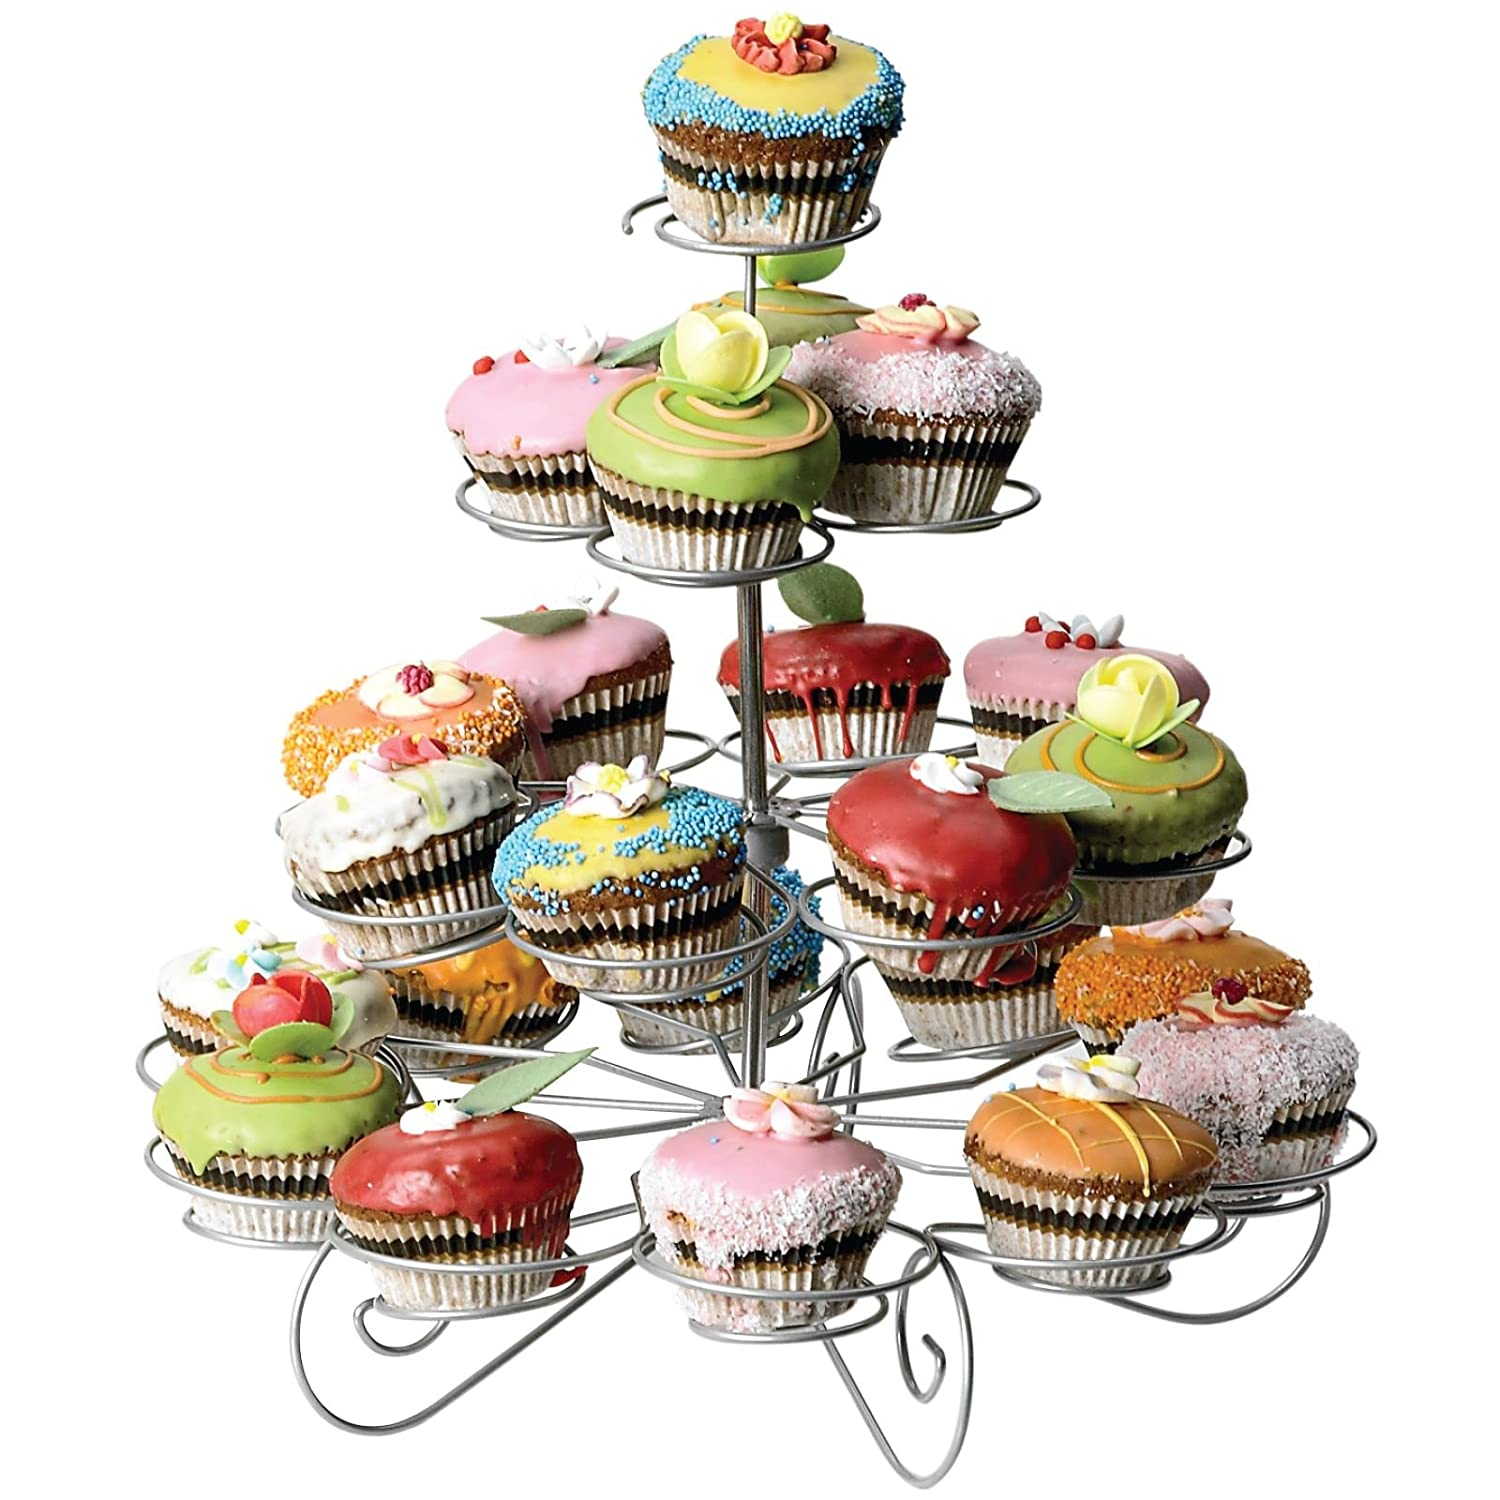 ASAB Cupcake Stand Muffin Holder Display Table Decor Steel Wire Frame Design For Weddings Birthday Party Baby Shower - 3 Tier